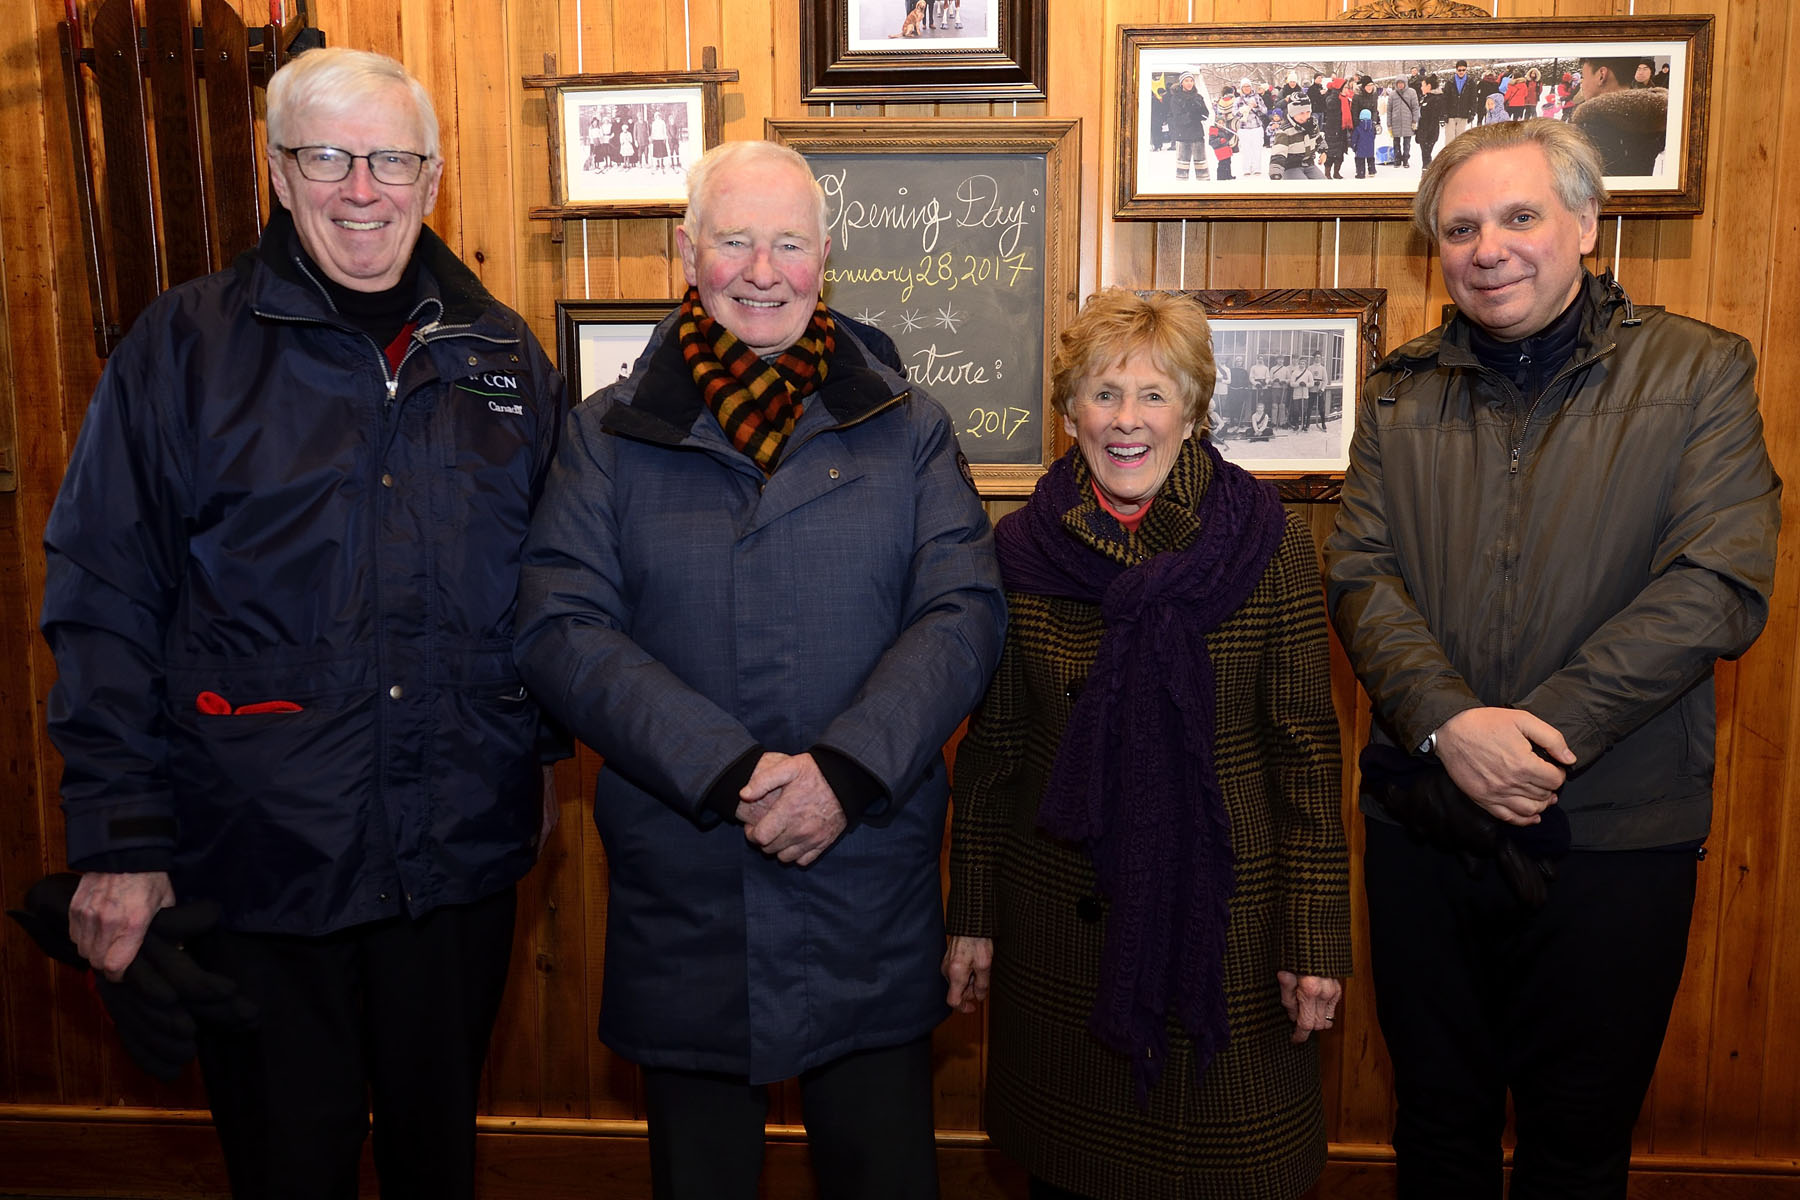 Mr. Russell Mills, Chair of the National Capital Commission, Governor General David Johnston, Mrs. Sharon Johhnston and Dr. Mark Kristmanson, Chief Executive Officer of the National Capital Commission, were the first to enter the refurbished Winter Pavilion.